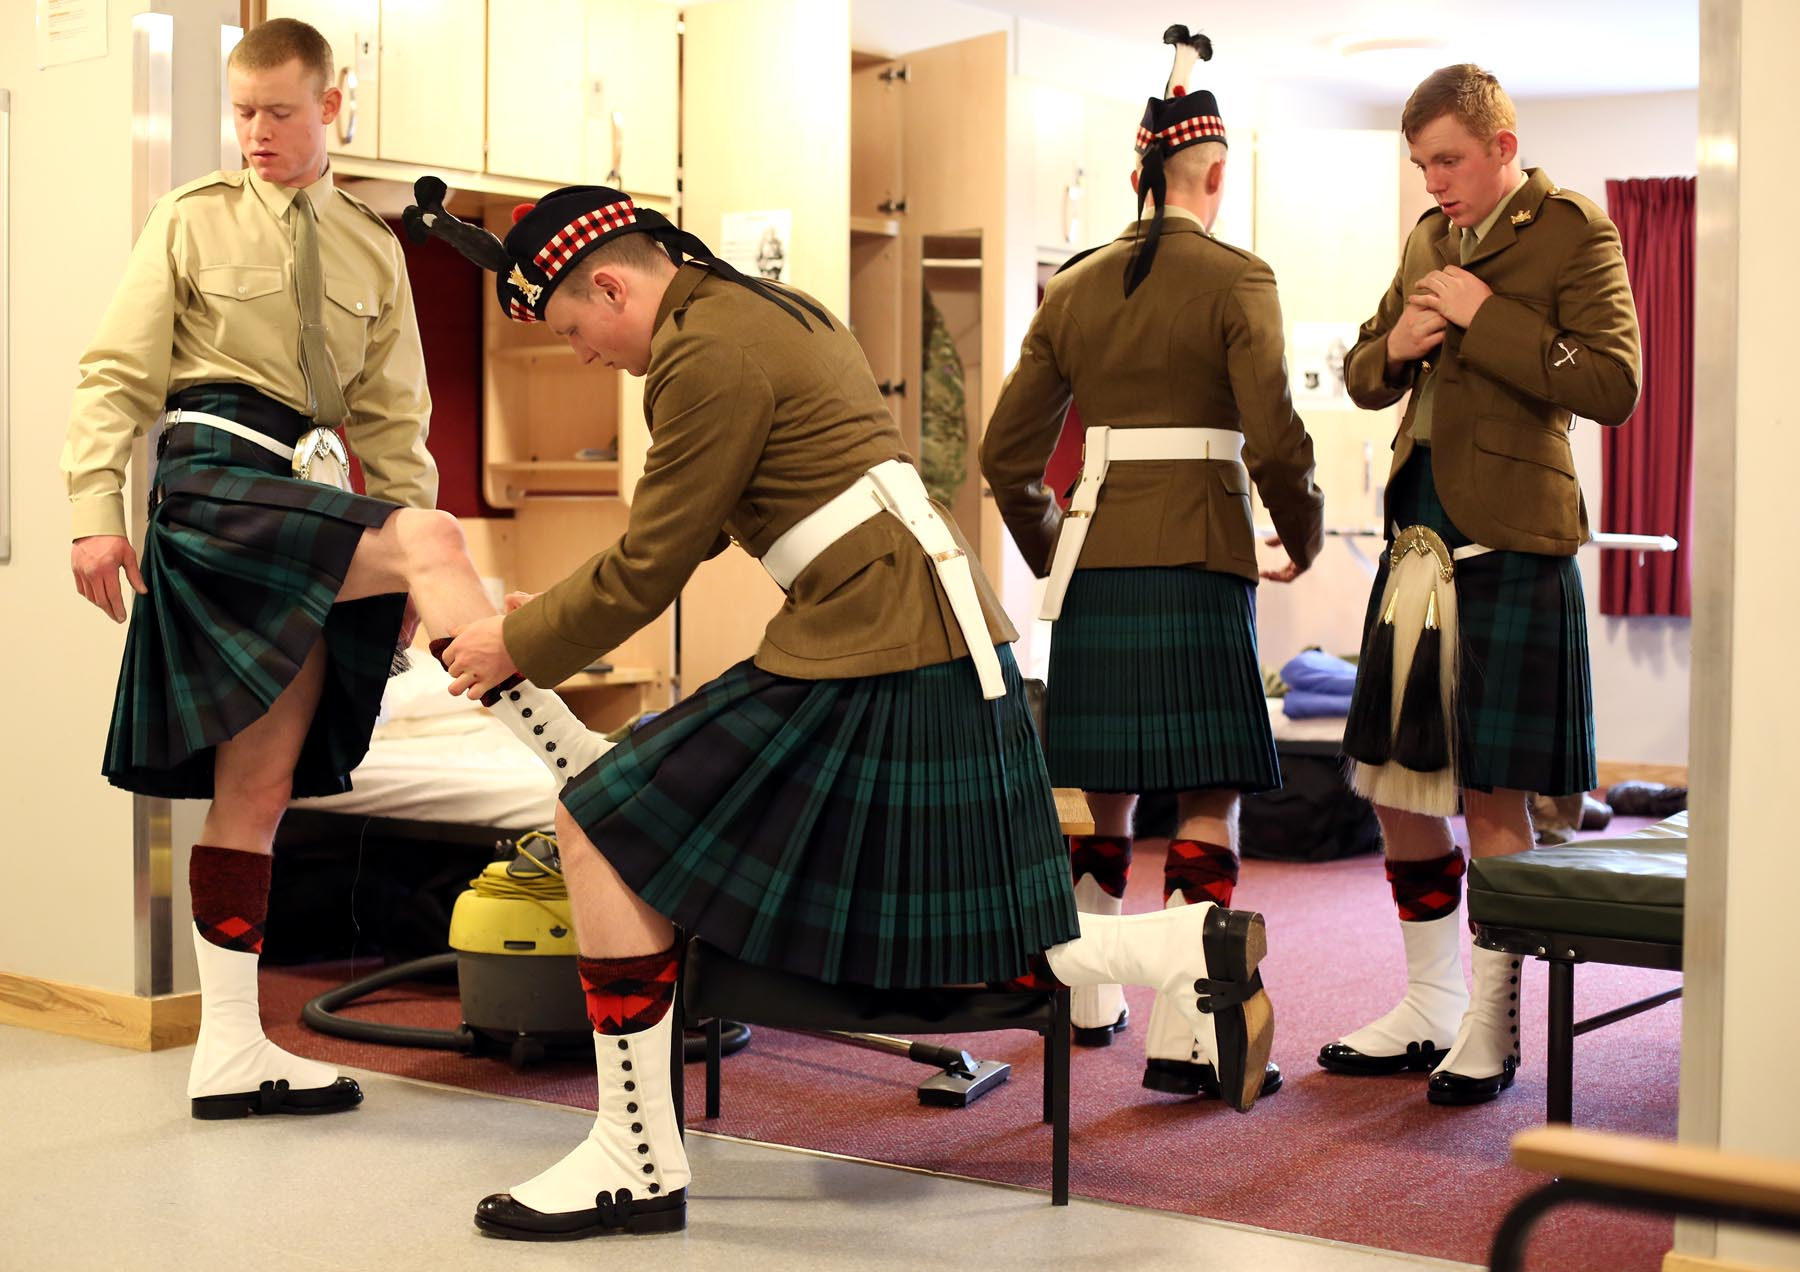 Image result for scottish soldier recruit images